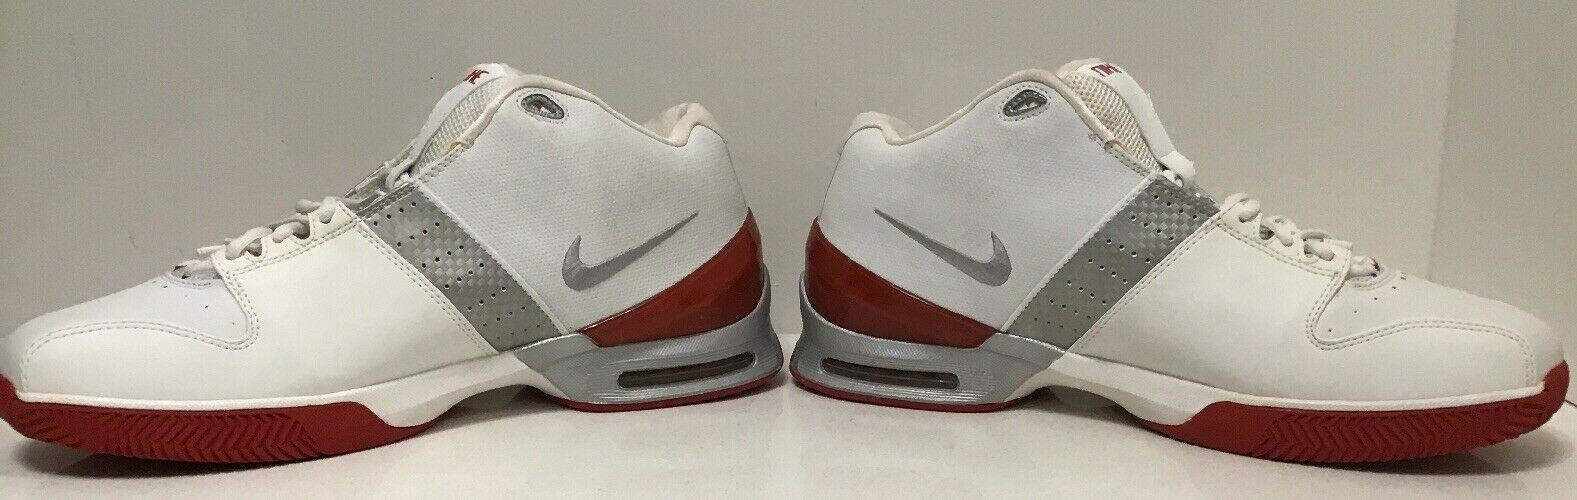 NIKE Air Speed Systems 040406 VP - White  Red - Mens shoes -Sz 14- New No Box